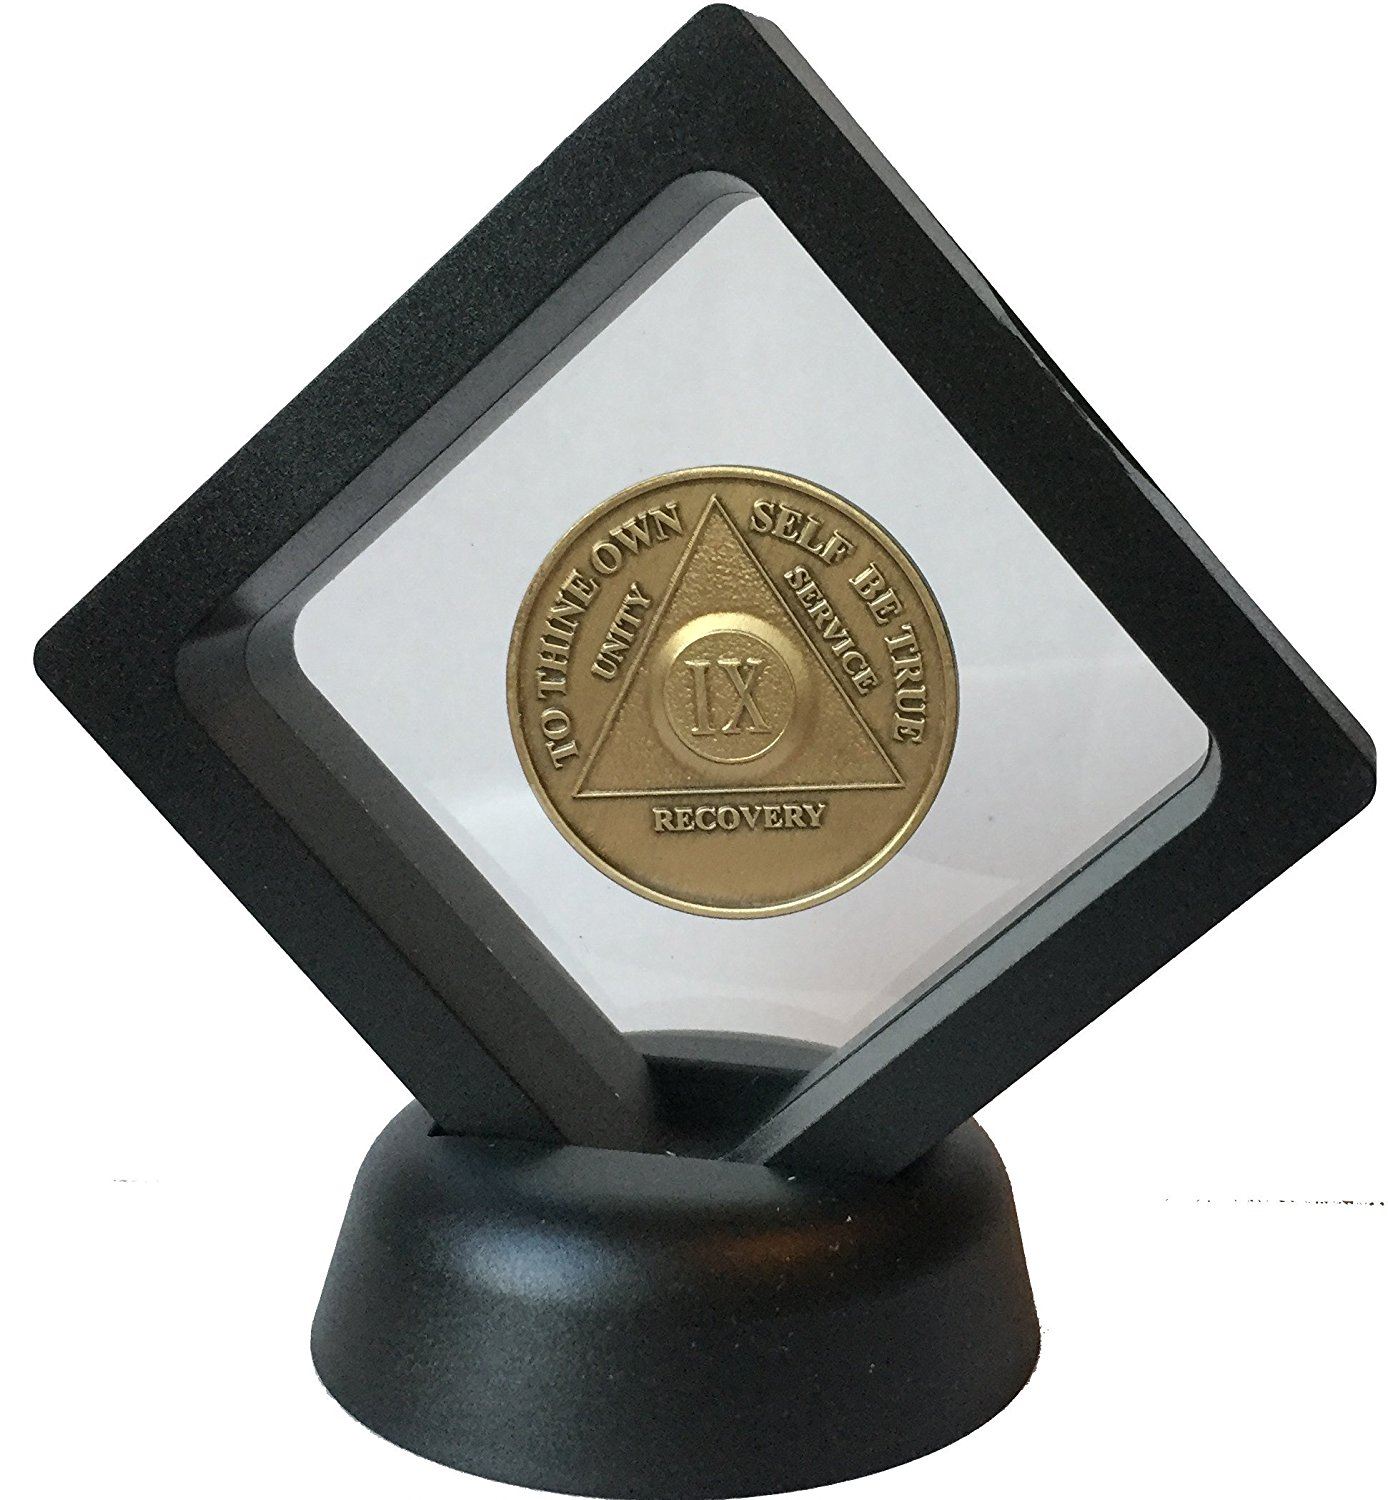 Black Diamond Square Medallion Challenge Coin Display Stand Holder Magic Suspension Box by